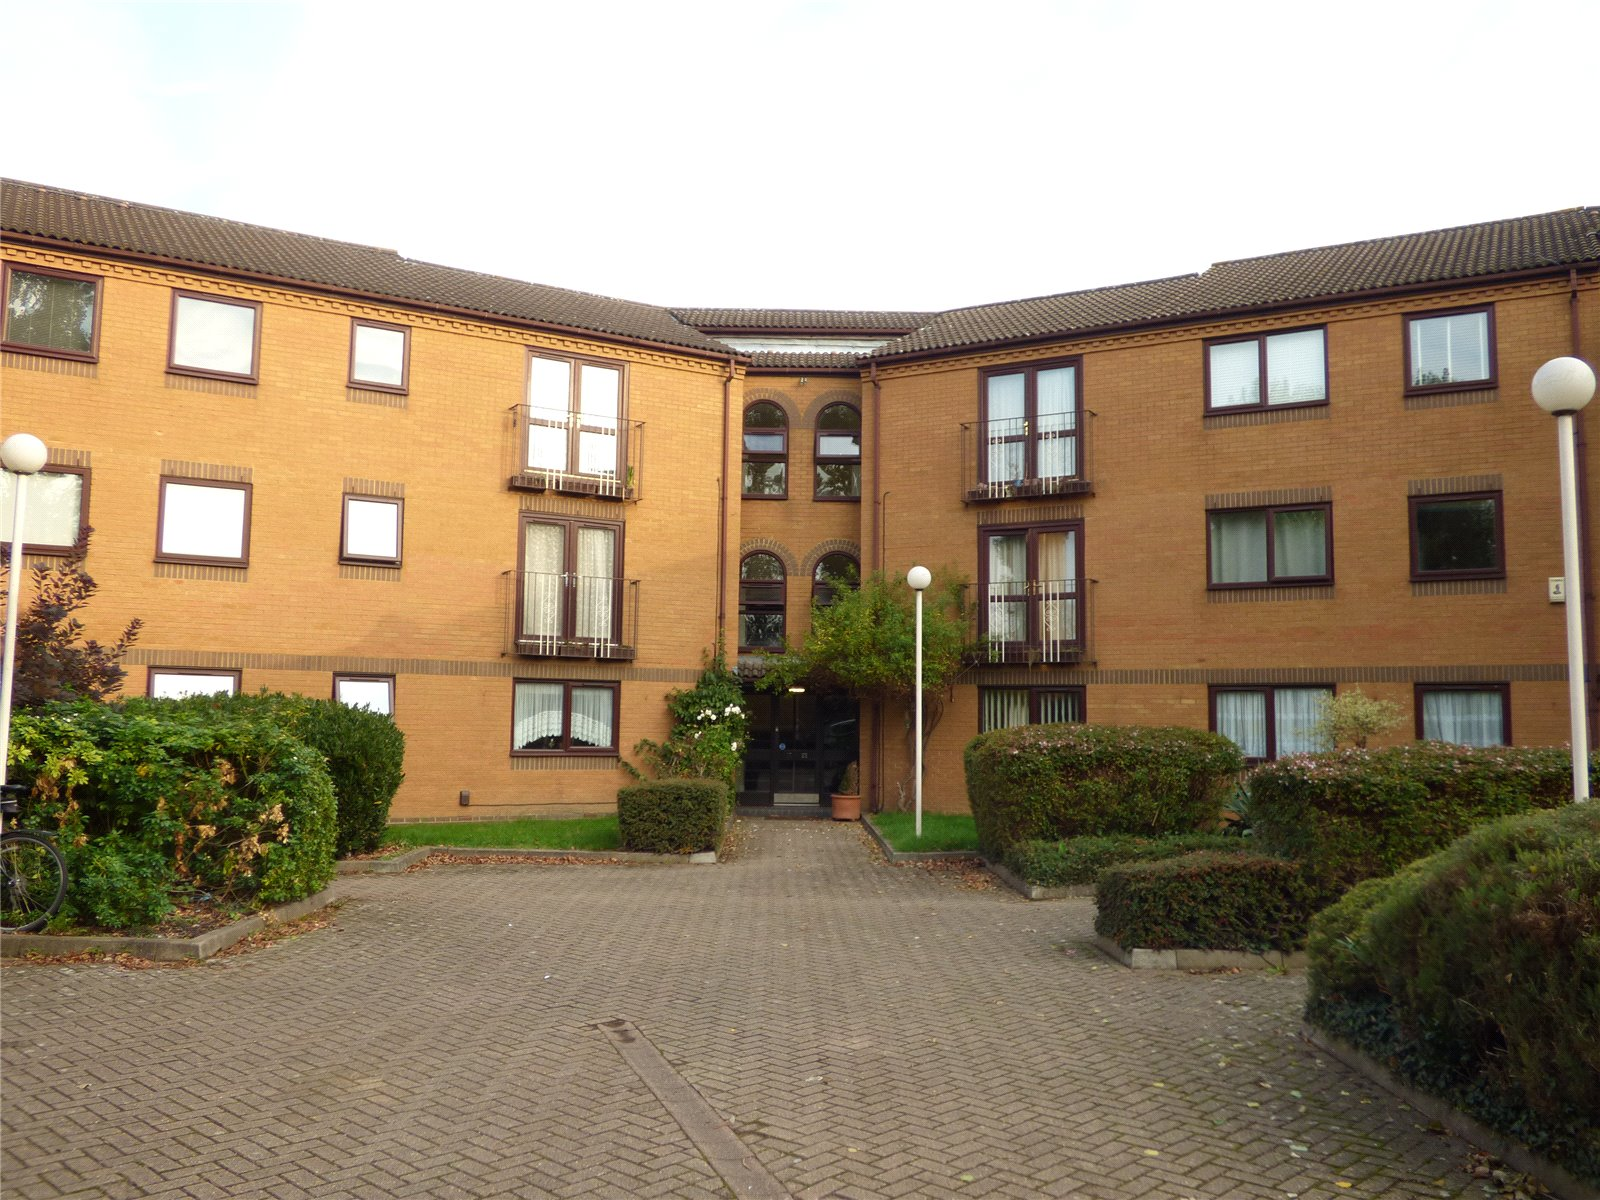 2 Bedrooms Flat for sale in Westgate Court Waltham Cross Hertfordshire EN8